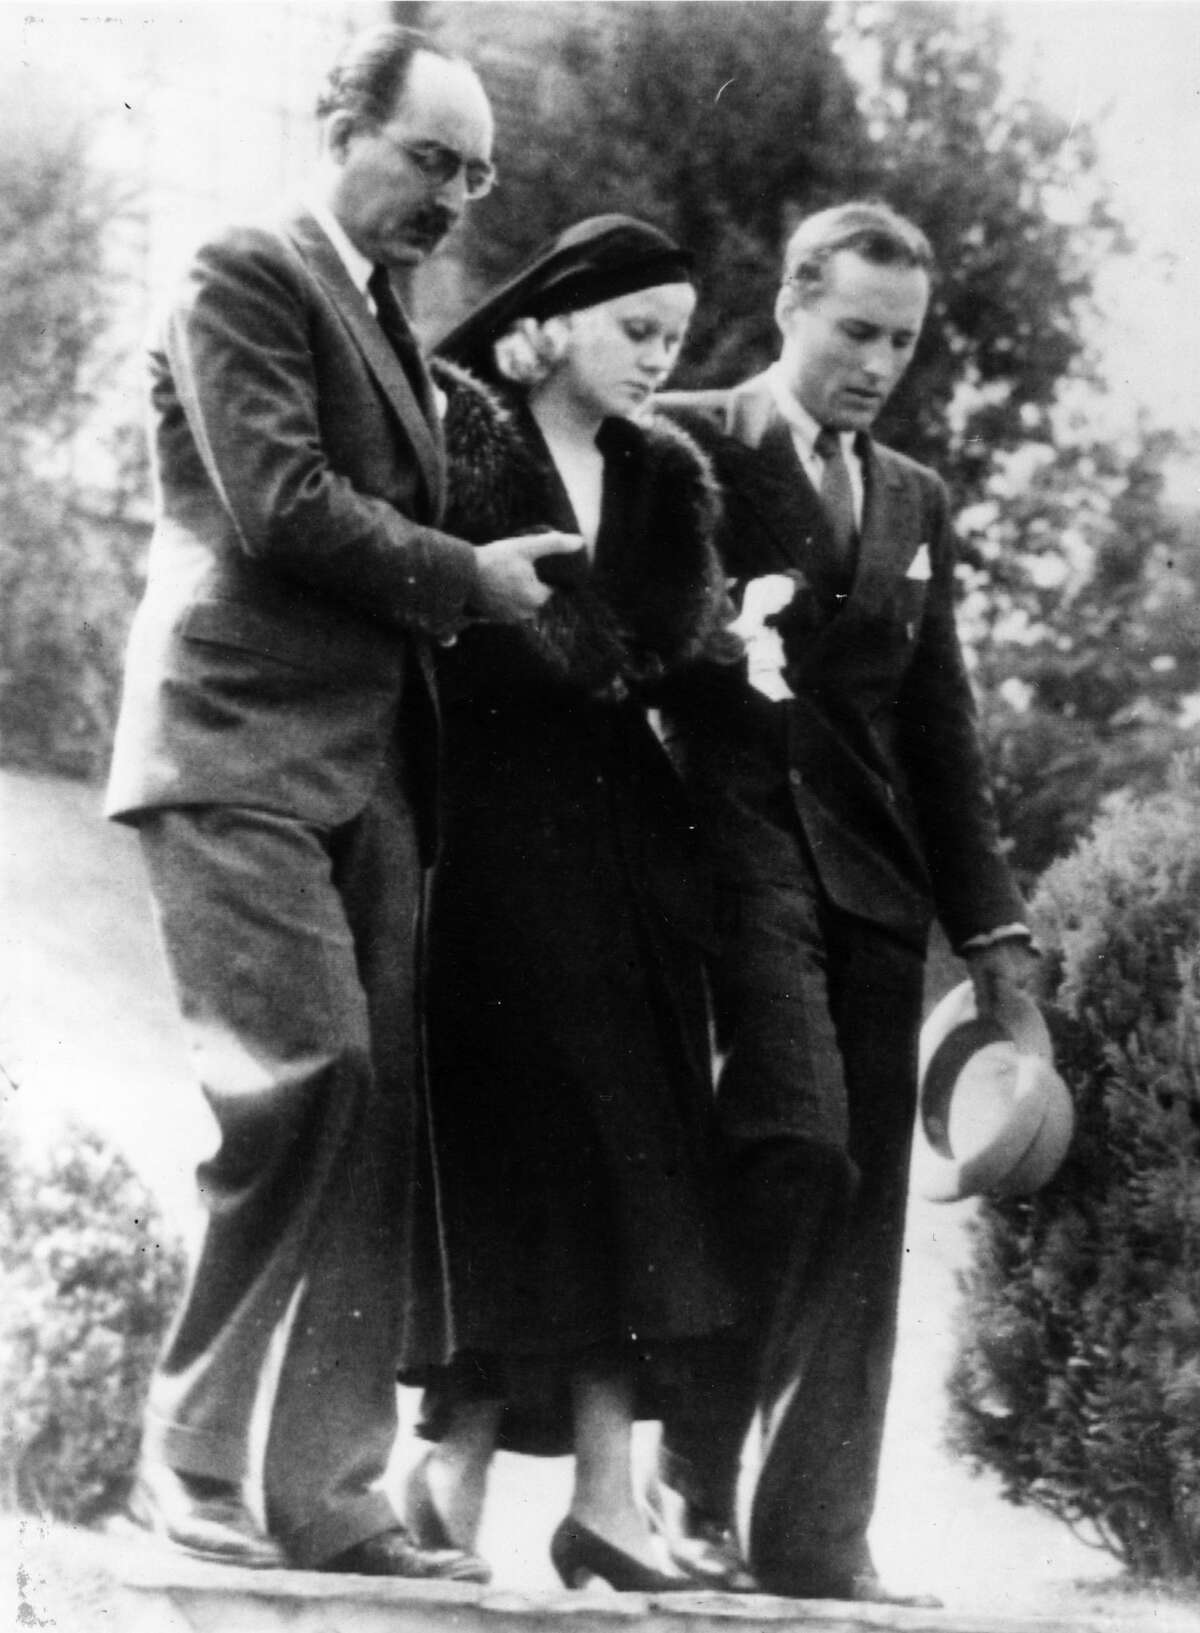 Jean Harlow being assisted from her house by her step-father Mario Bello and a relative Donald Robertson on her way to the funeral of her husband Paul Bern, who was found shot dead at his Beverly Hills home in 1932.